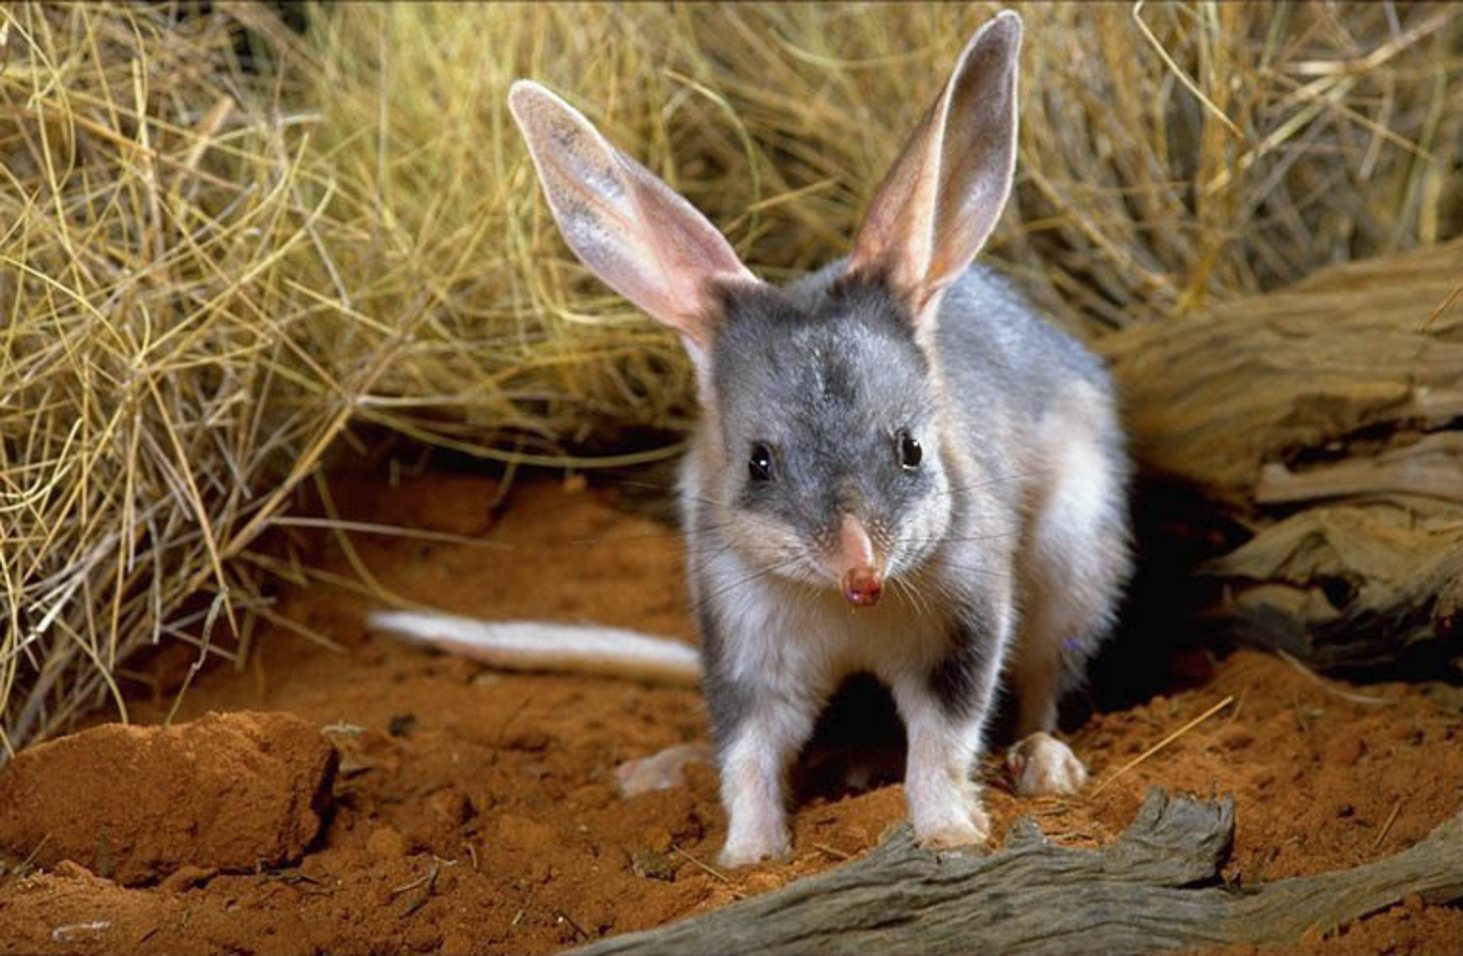 Success Story: The Greater Bilby Makes A Comeback